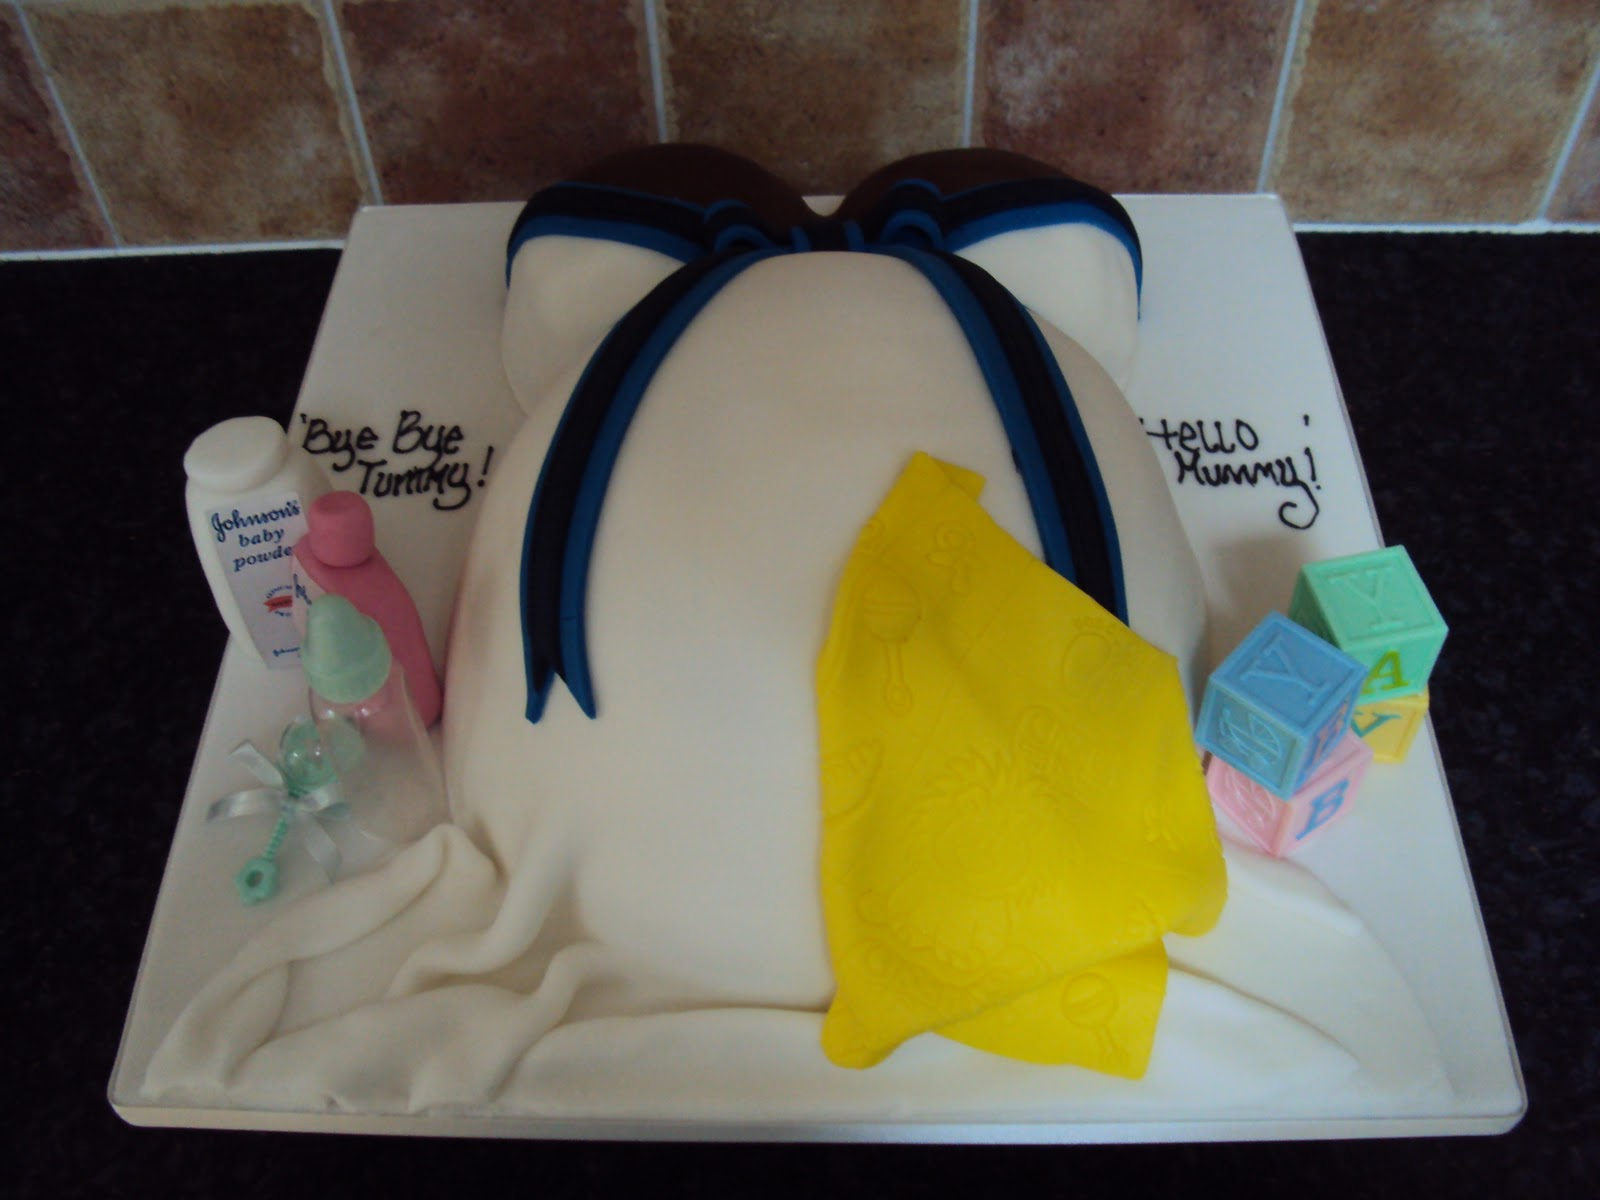 Baby Bump Cake Images : MIMI TO YOU - SWEET AND STYLISH CAKES: Baby Bump Cake